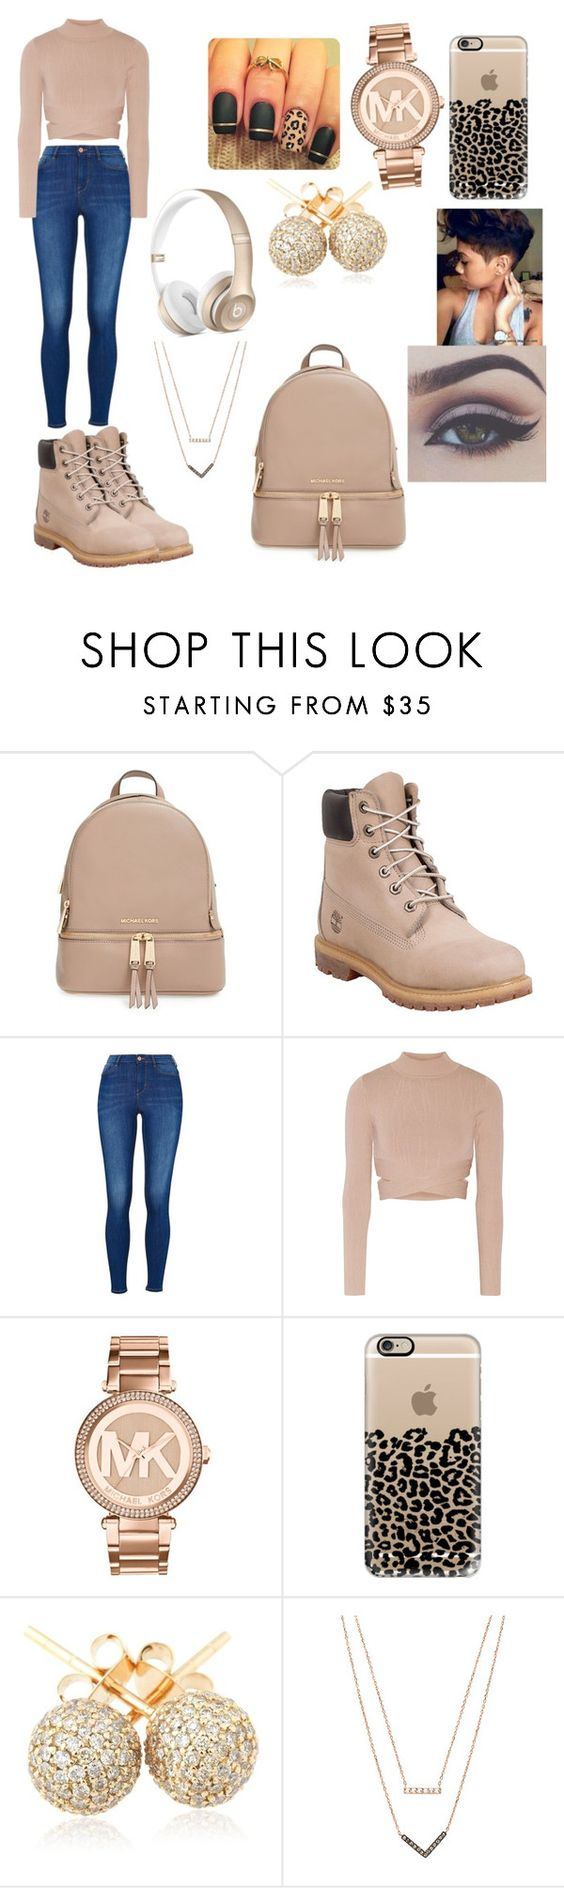 """""""Open House"""" by queenawesome-mykee ❤ liked on Polyvore featuring MICHAEL Michael Kors, Timberland, Jonathan Simkhai, Michael Kors, Casetify, Loushelou, women's clothing, women, female and woman"""